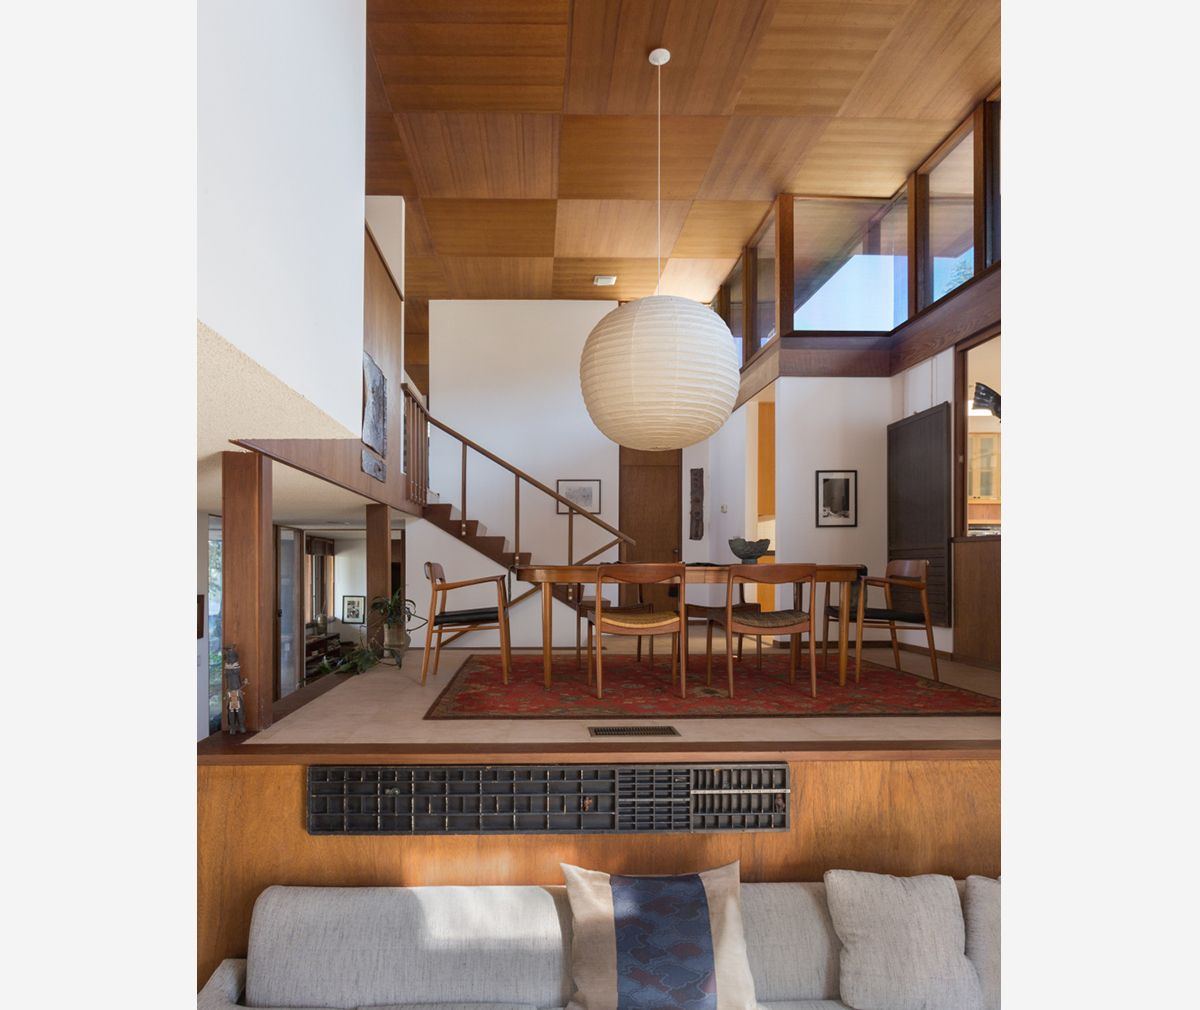 Light and space woodland hills architecture decoration mid century modern interiors